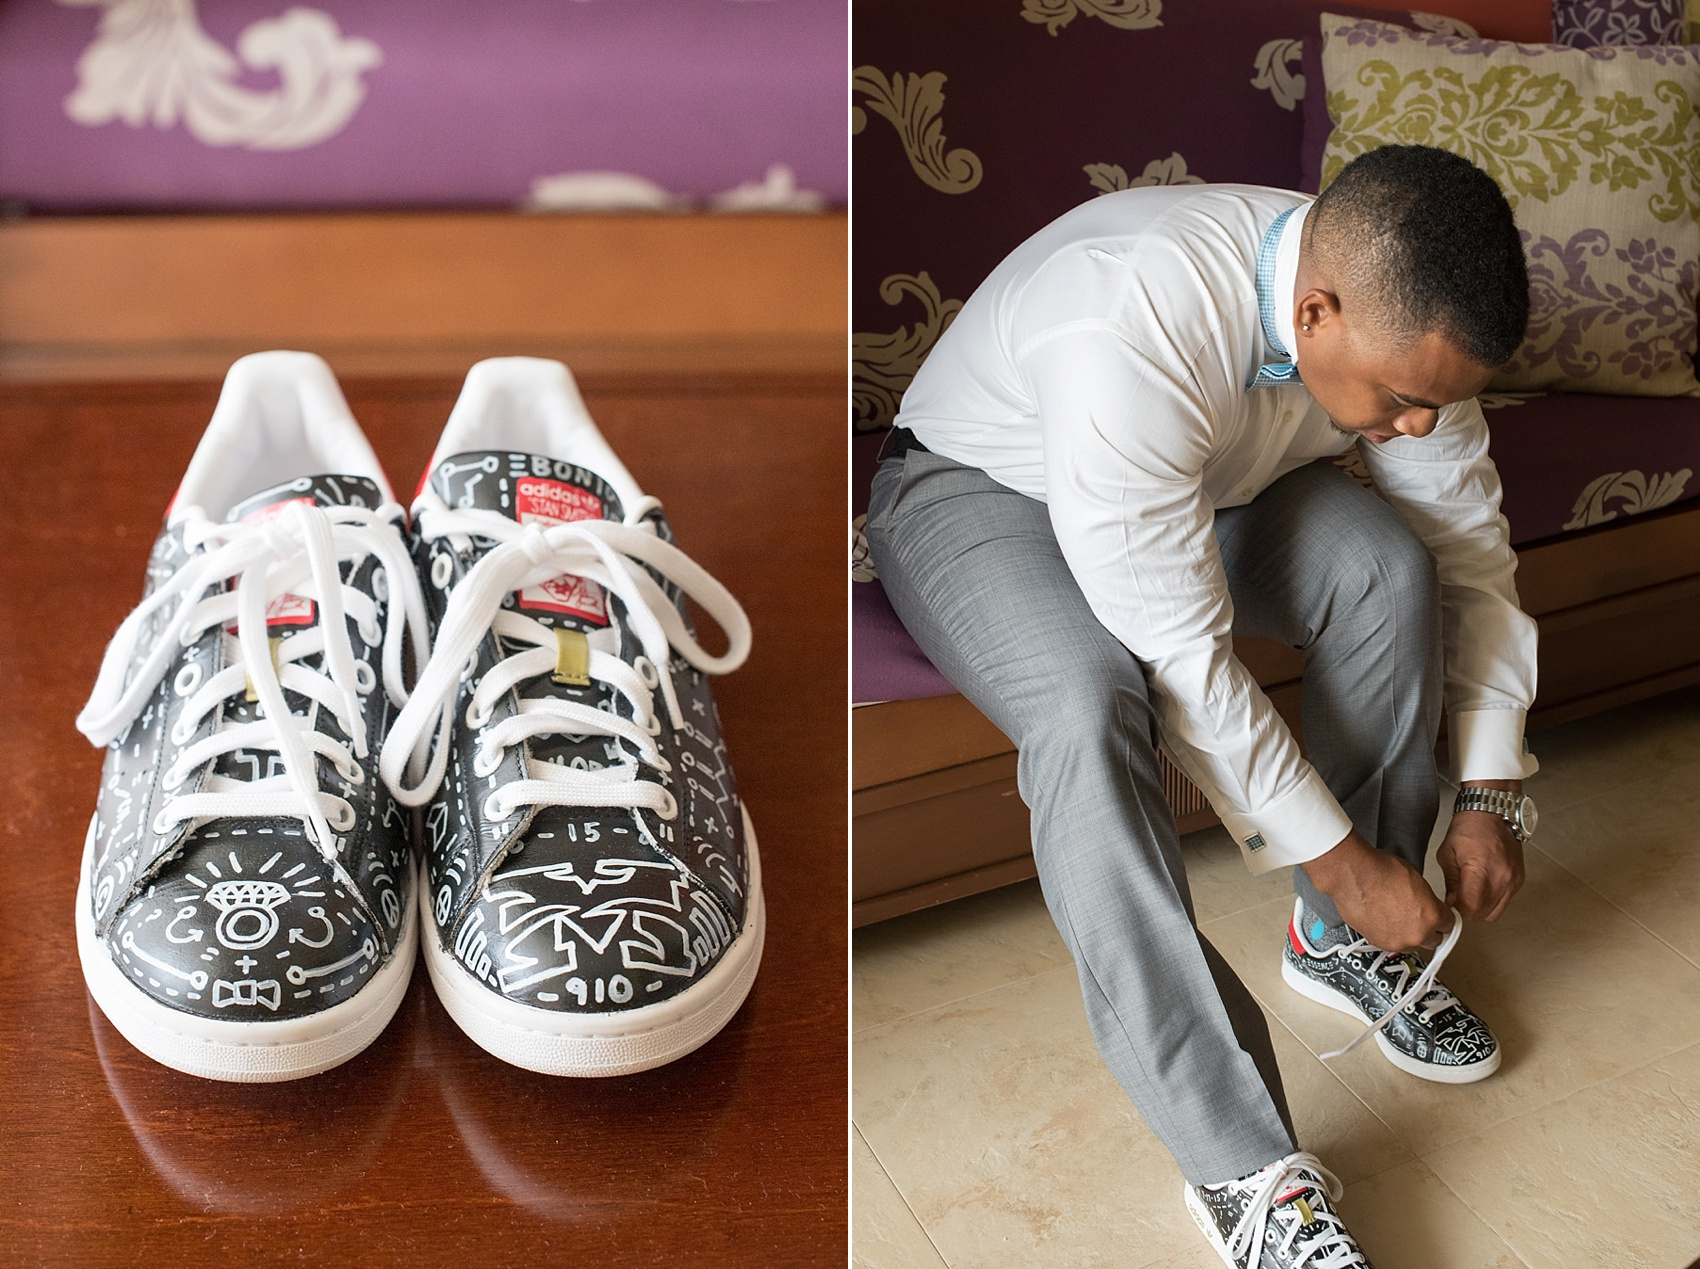 Iberostar Jamaica wedding photos, custom groom's sneakers. Images by Mikkel Paige Photography.